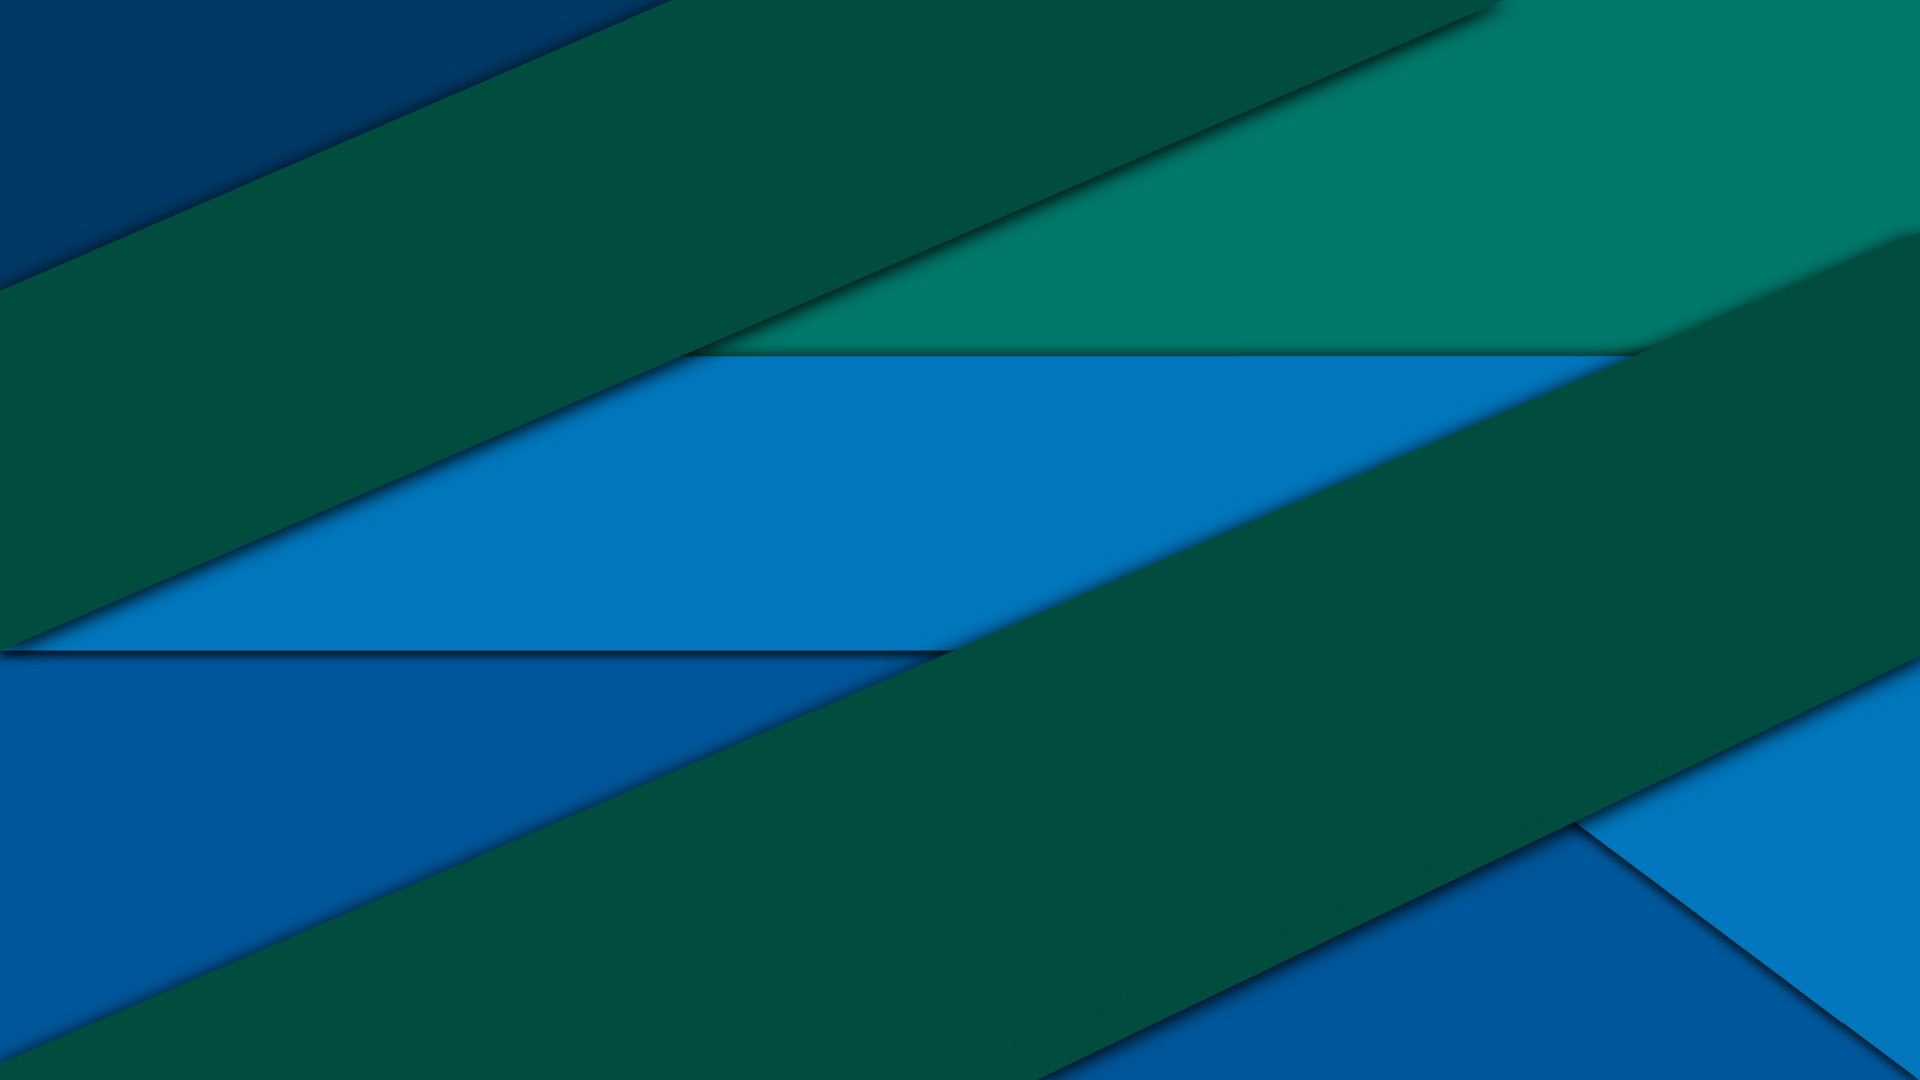 Res: 1920x1080, Blue and Green Material Design Wallpaper